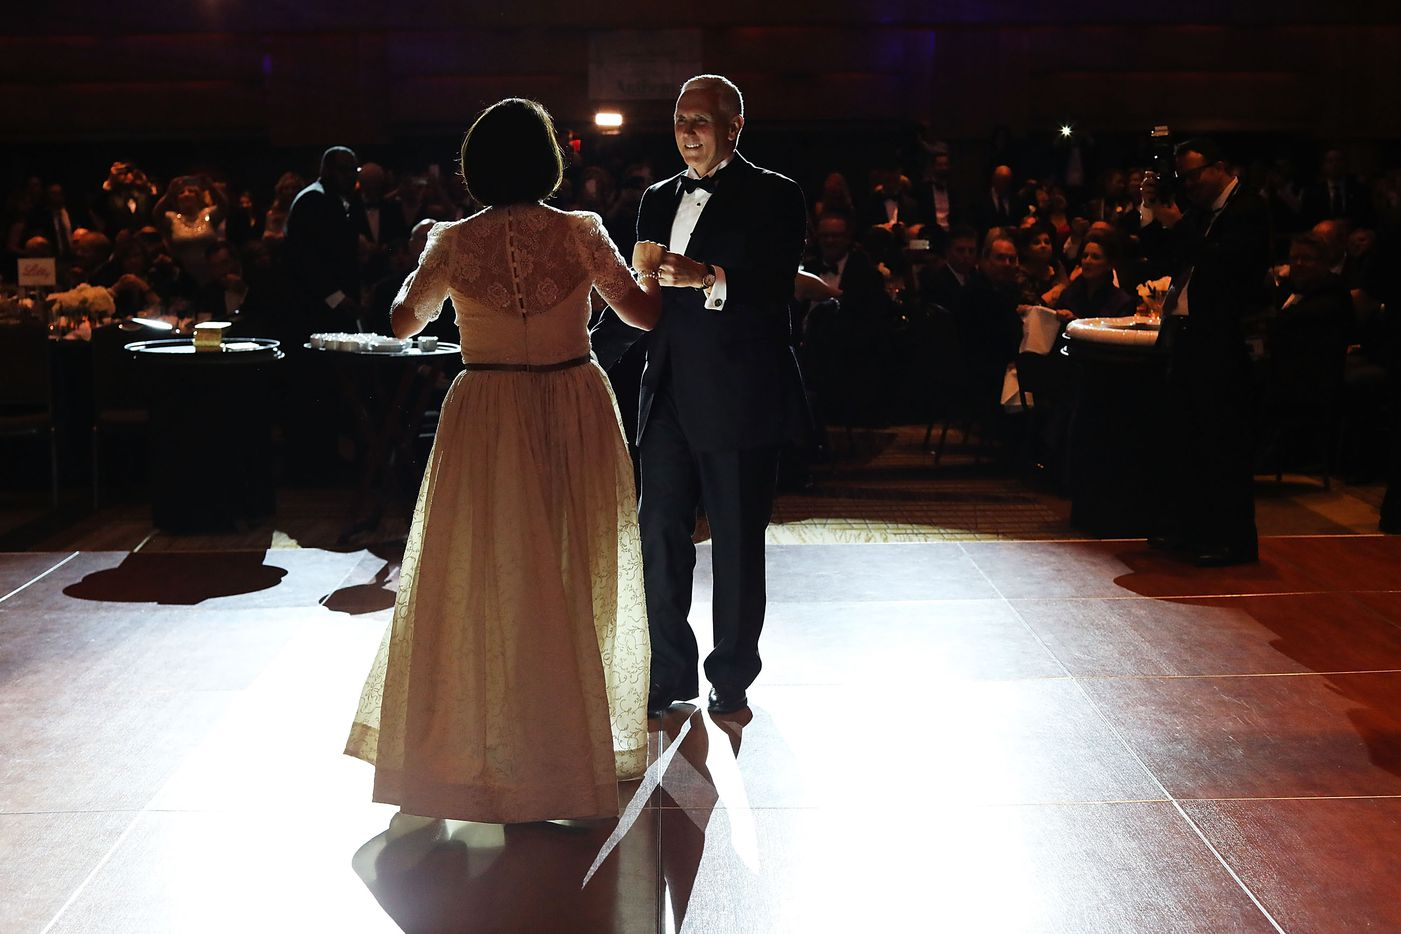 Vice President-elect Mike Pence and his wife Karen Pence take the first dance at the Indiana Society Ball on January 19, 2017 in Washington, DC. Washington and the entire nation is preparing for the transfer of the United States presidency tomorrow as Donald Trump is sworn in as the 45th president January 20.